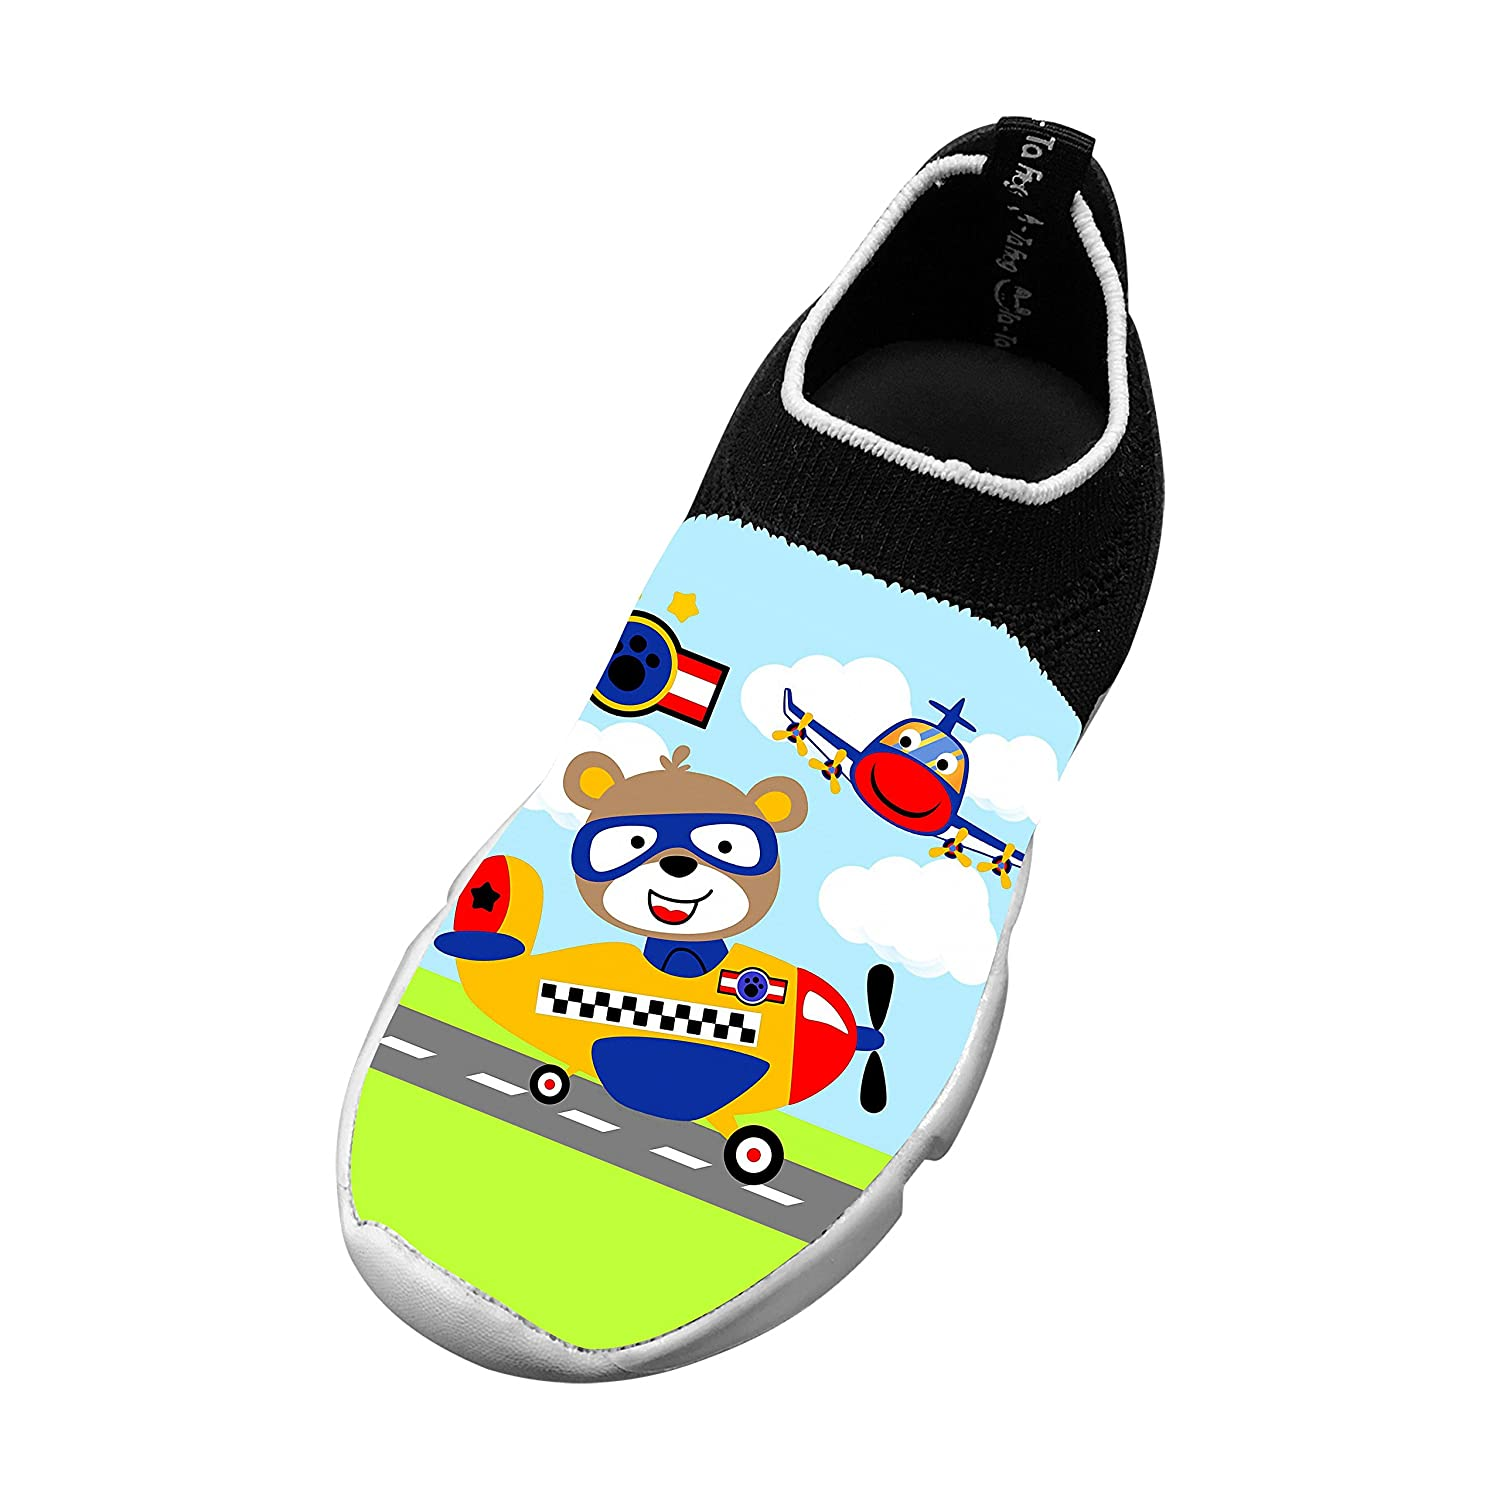 New Slim fit Flywire Weaving Jogging Shoes 3D Make Your Own With Cartoon Bear For Unisex Kids